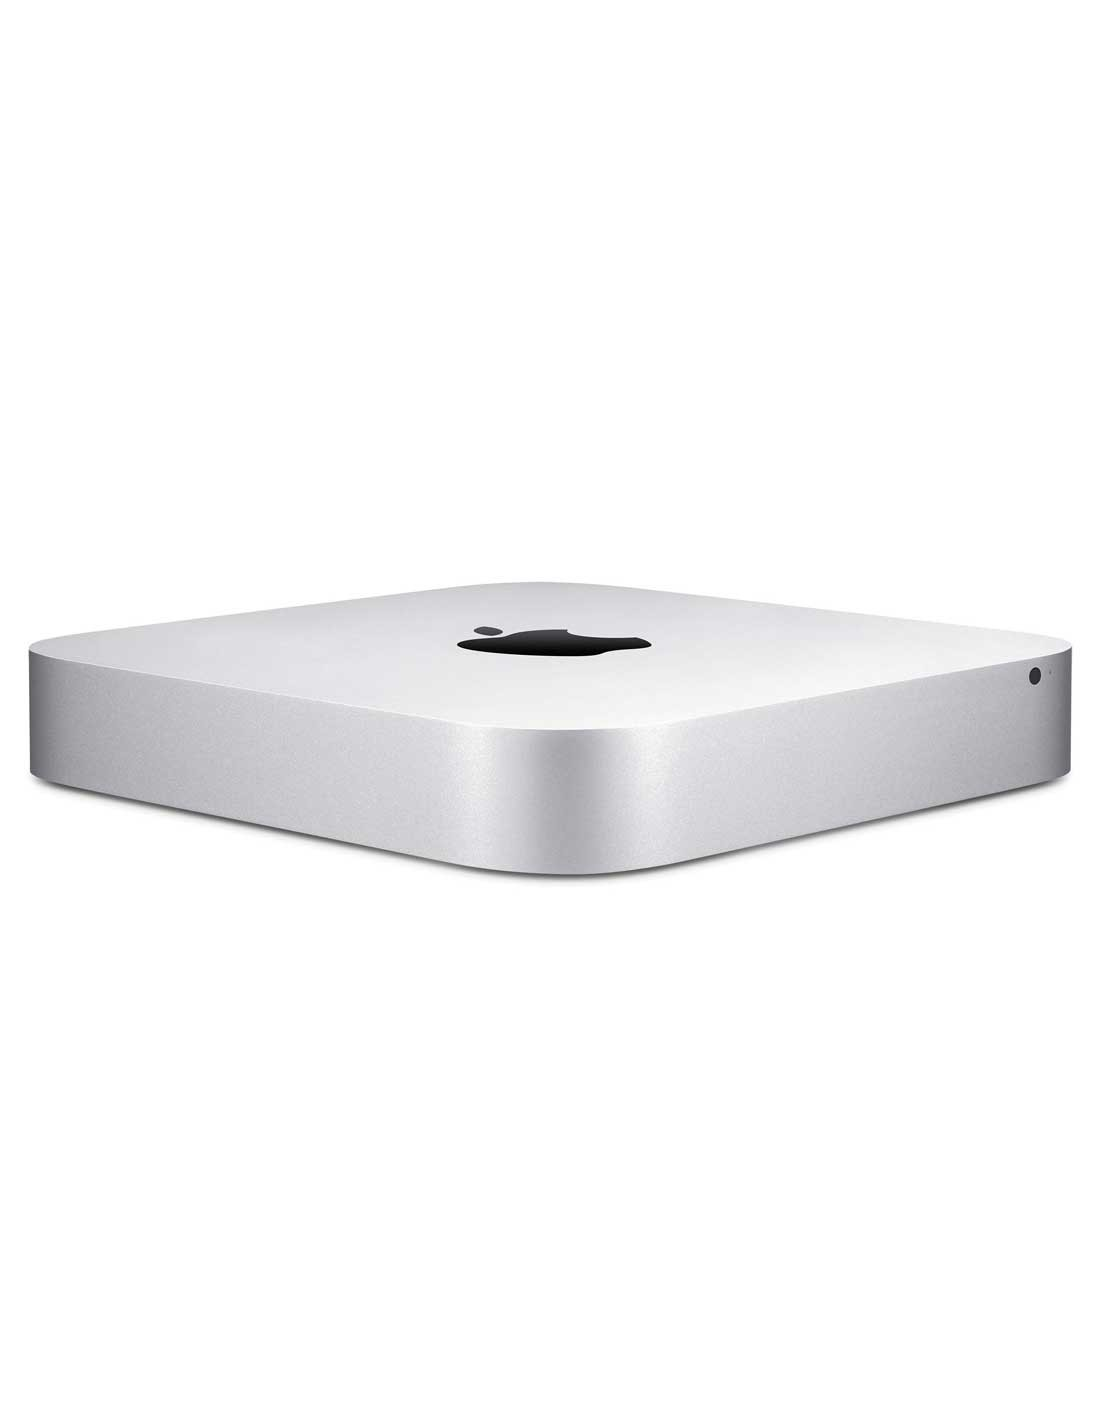 Apple Mac mini MGEN2 at a cheap price and free delivery in Dubai